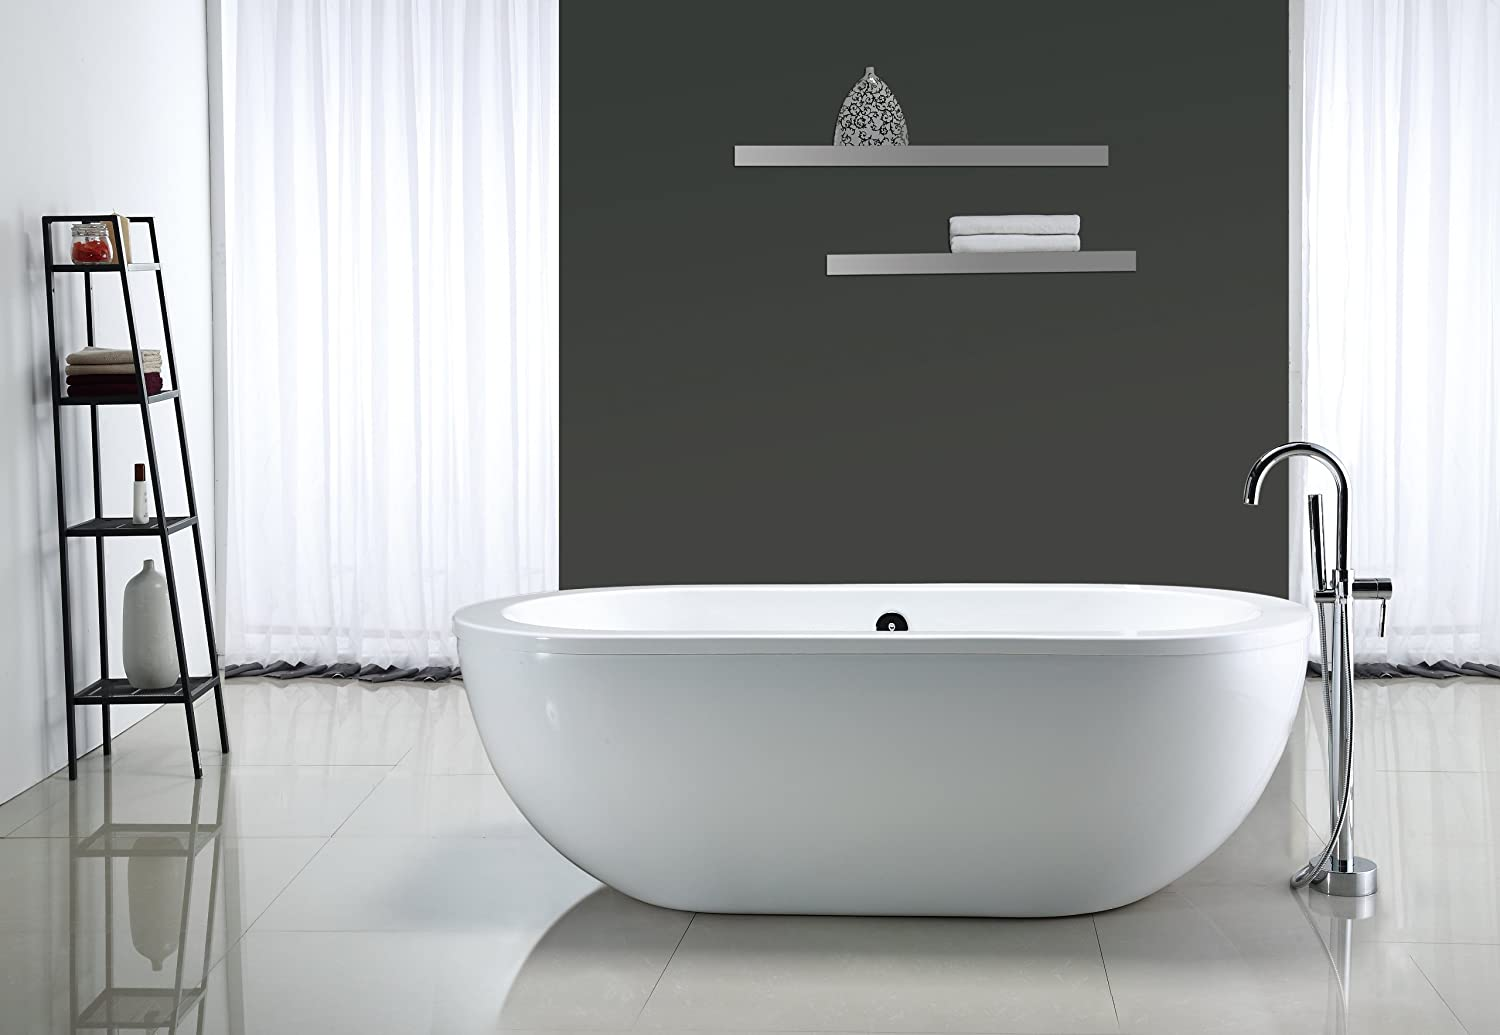 drain for freestanding tub. ove decors serenity 71-inch freestanding acrylic bathtub, glossy white - soaking tubs amazon.com drain for tub